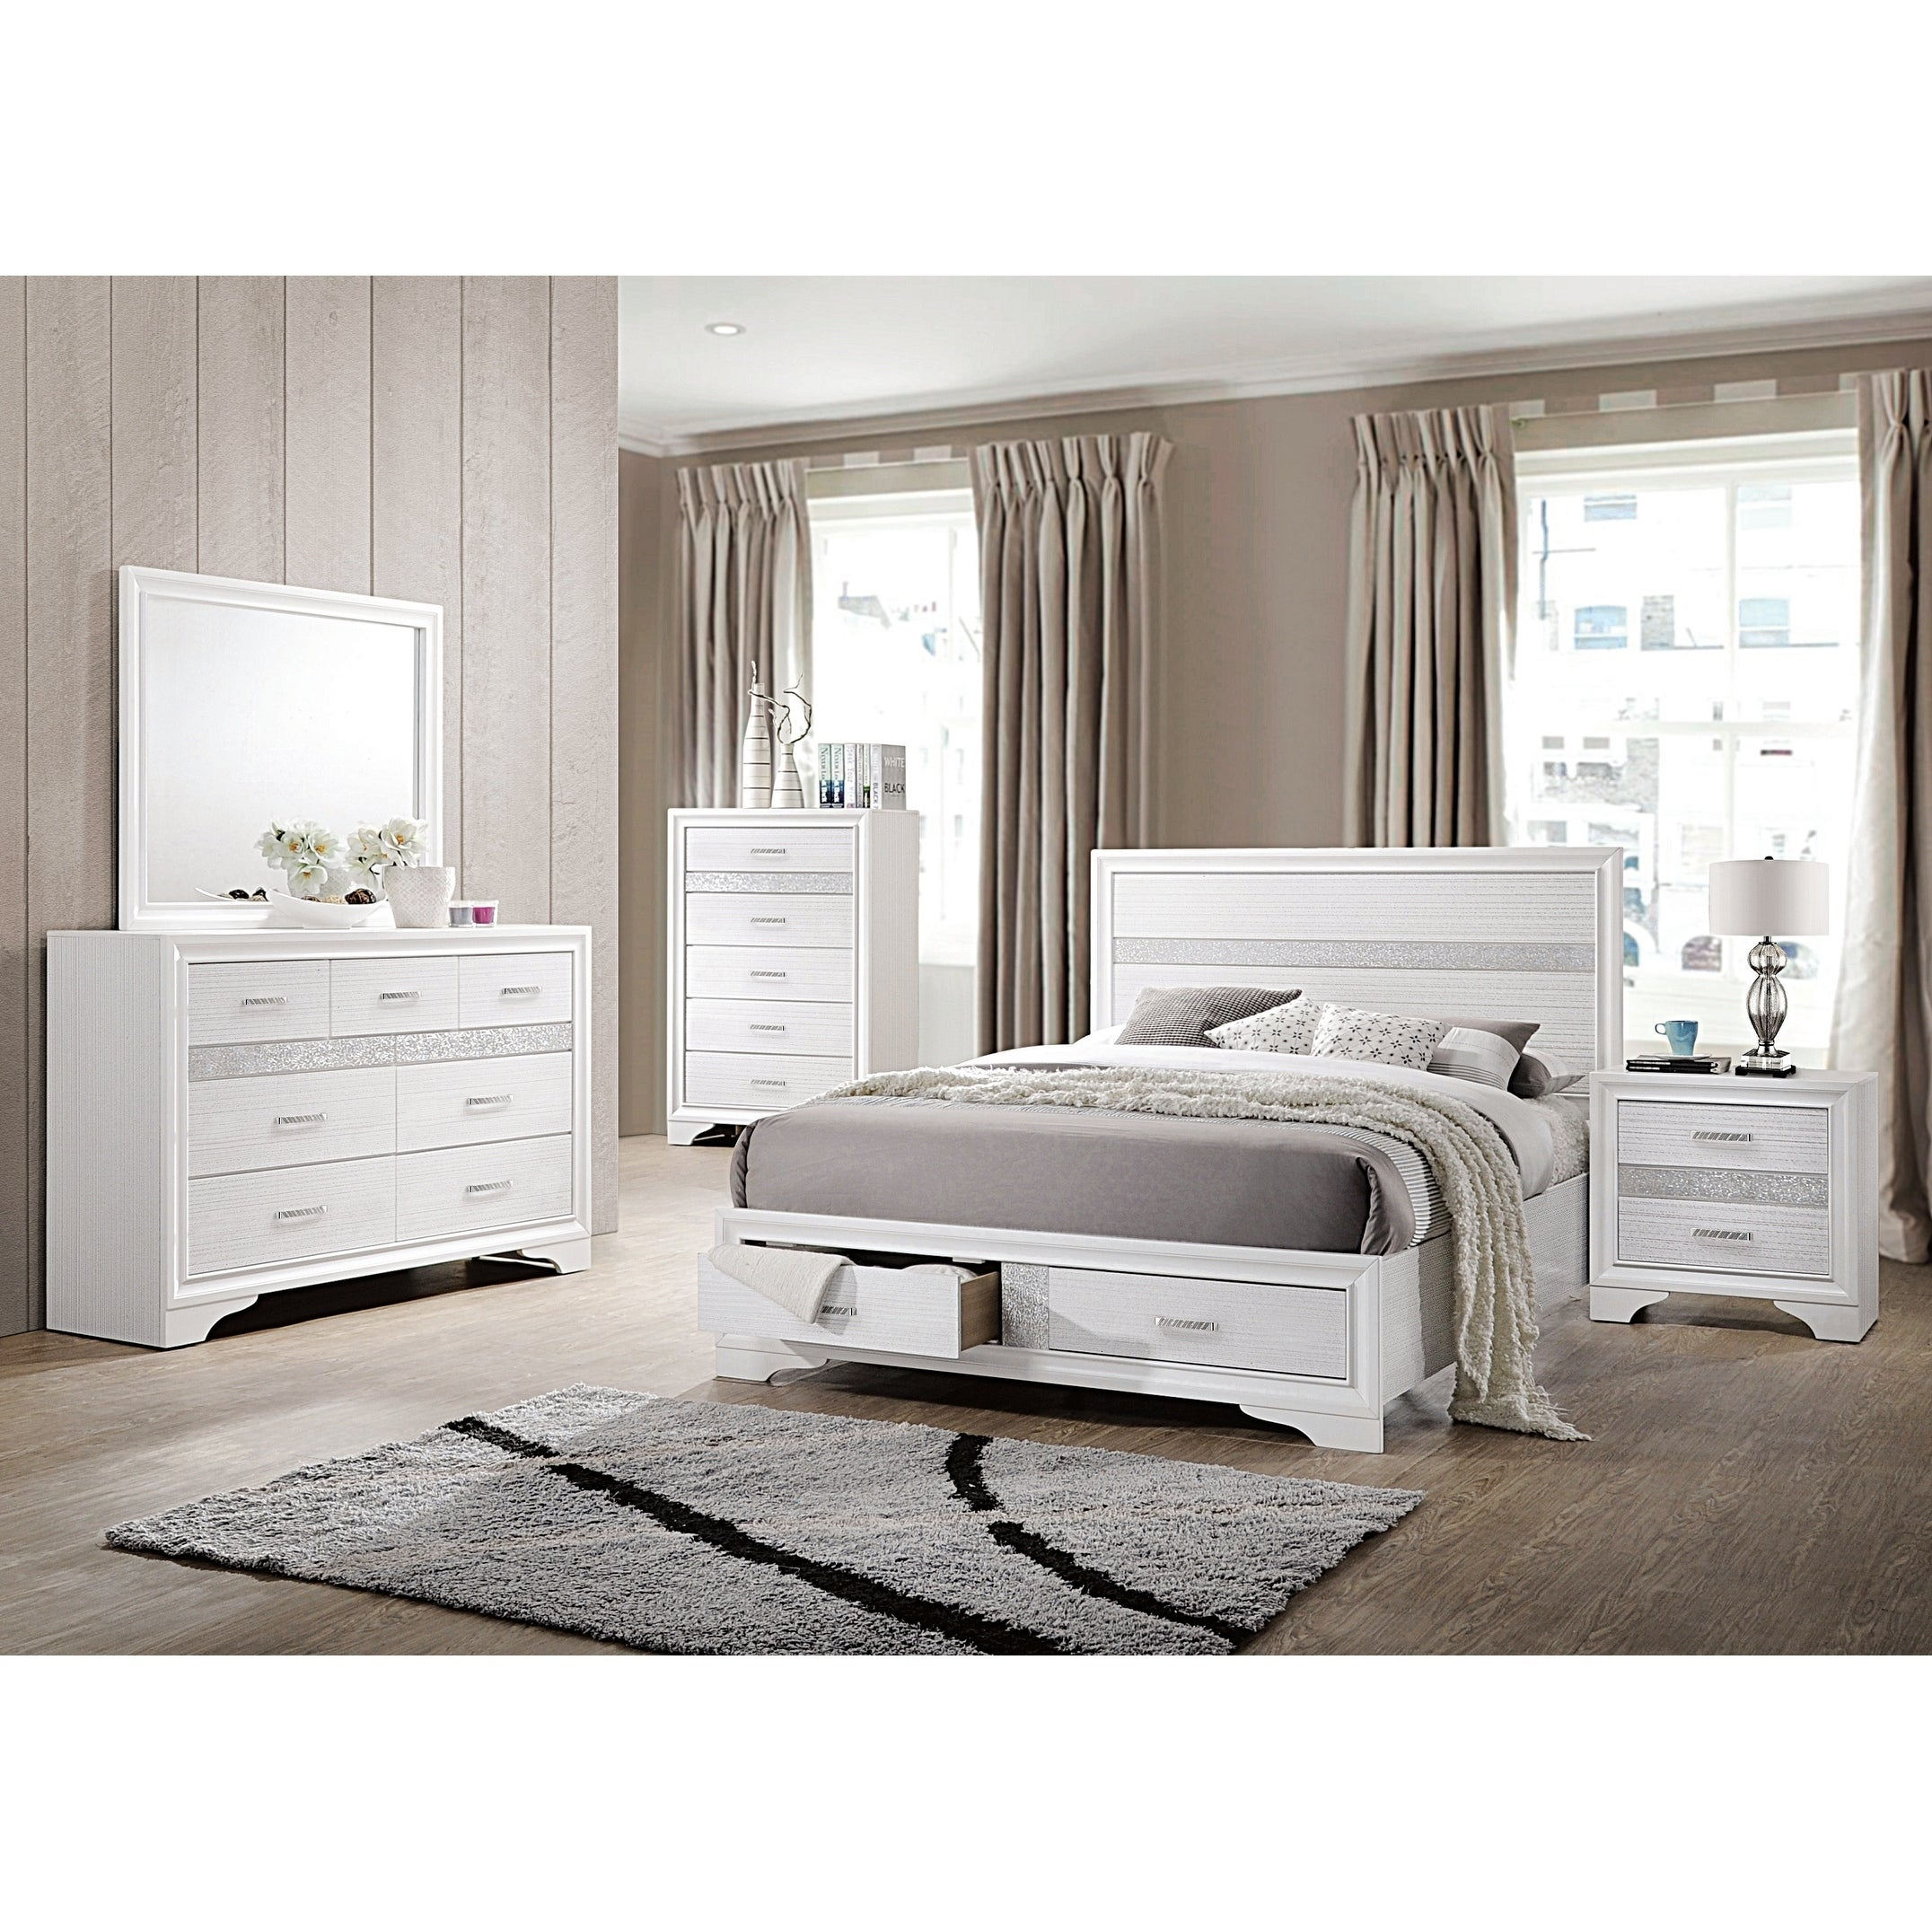 Miranda Contemporary White 12-piece Bedroom Set